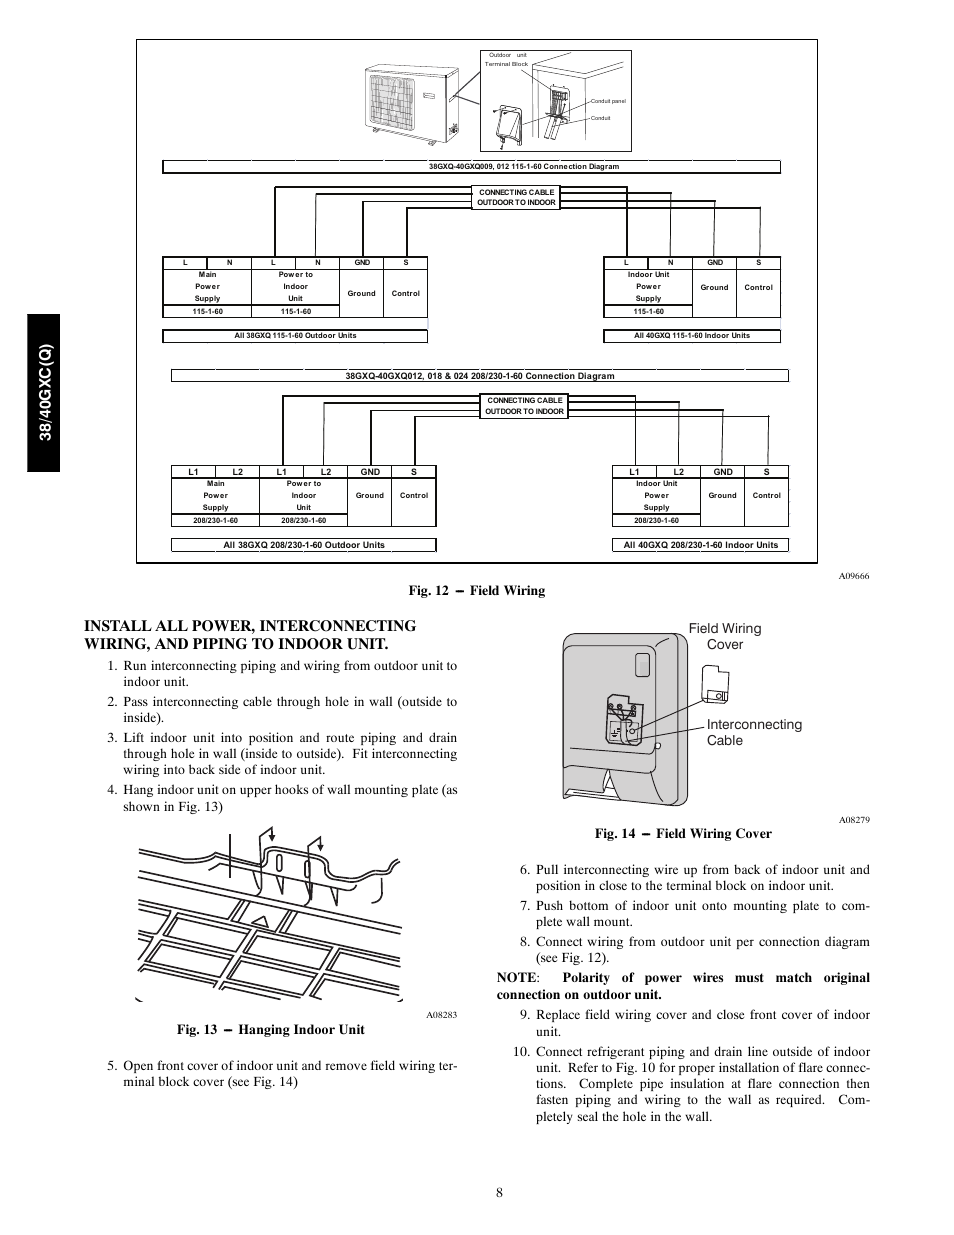 38/ 40gx c (q ), Fig. 12 --- field wiring | Carrier 40GXQ User Manual |  Page 8 / 12